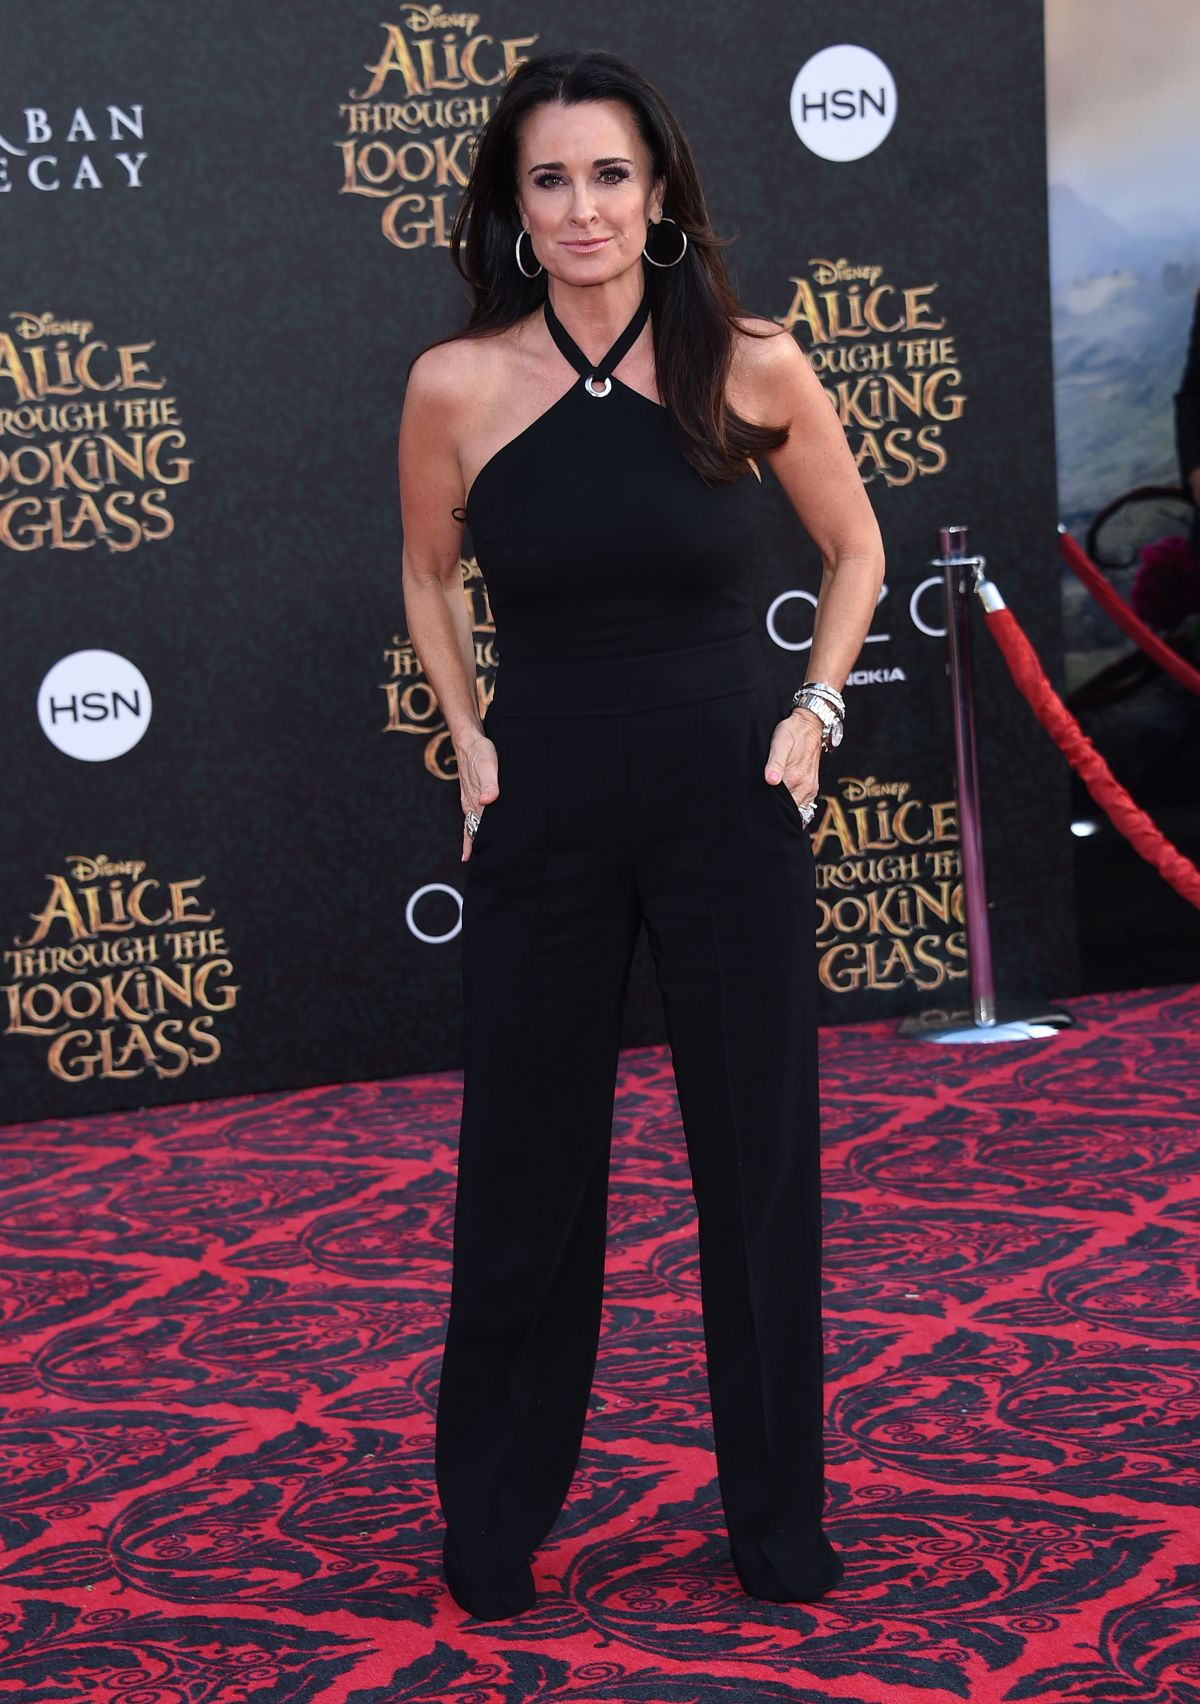 KYLIE RICHARDS at Alice Through the Looking Glass Premiere in Hollywood 05/23/2016